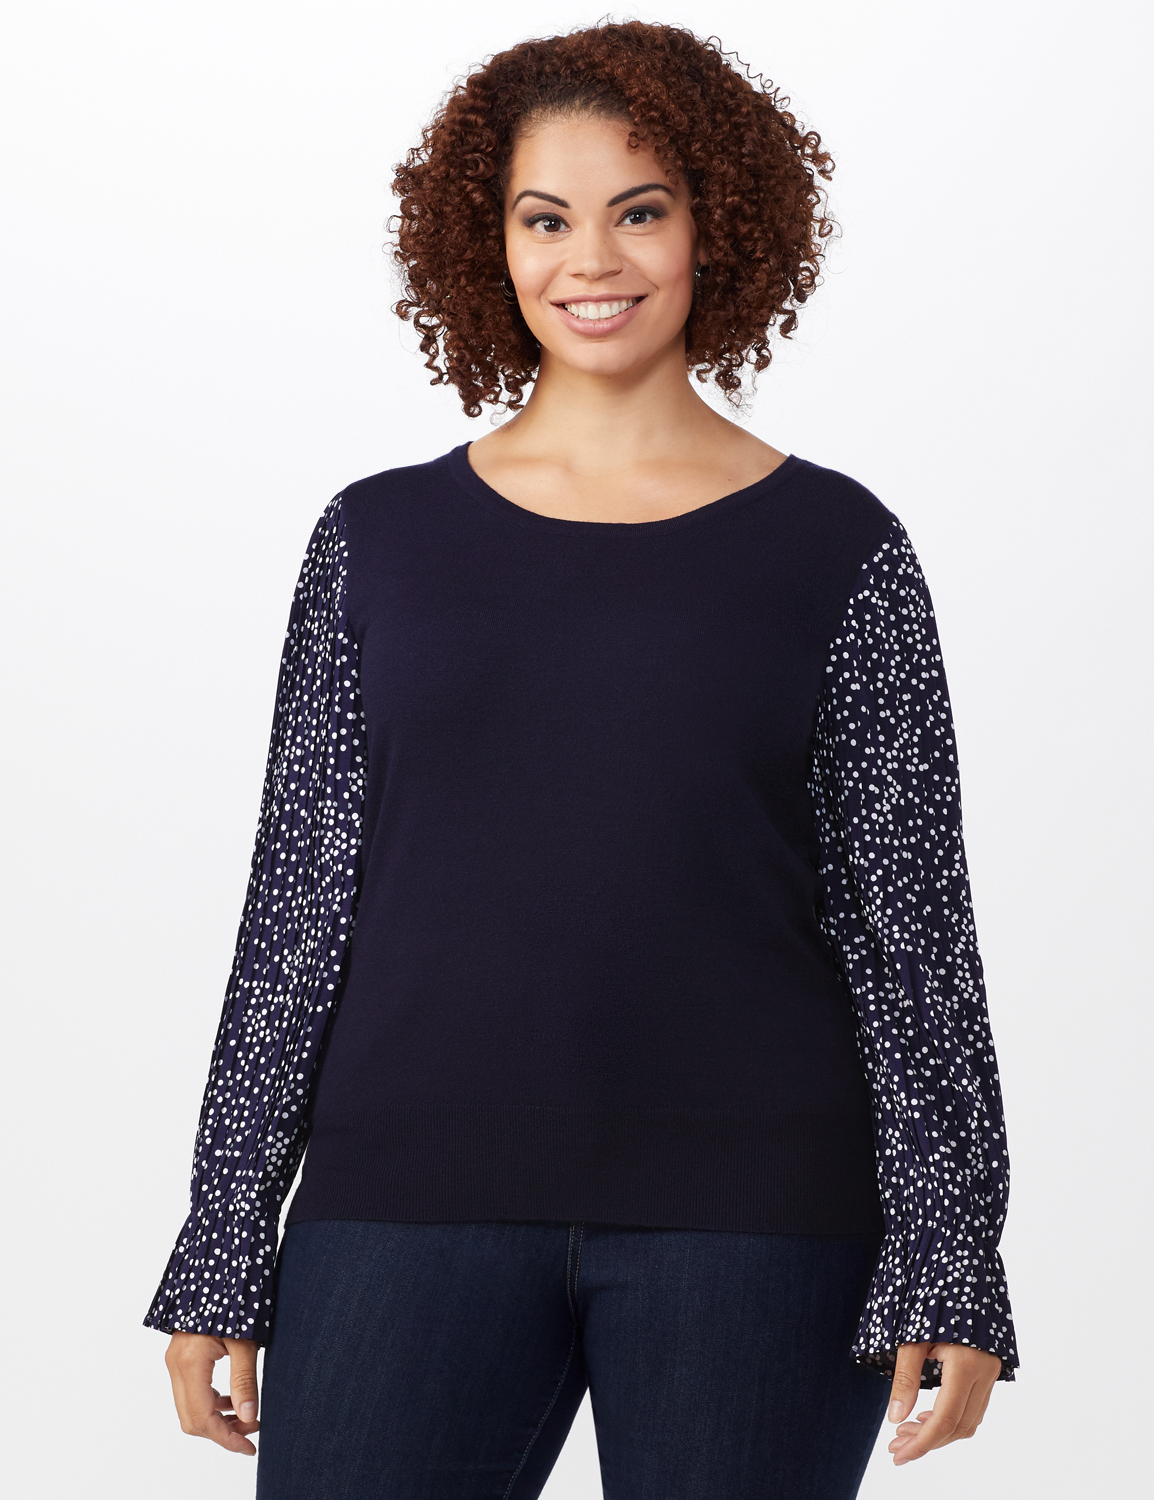 Roz & Ali Pleated Sleeve Pullover Sweater - Plus -Navy - Front